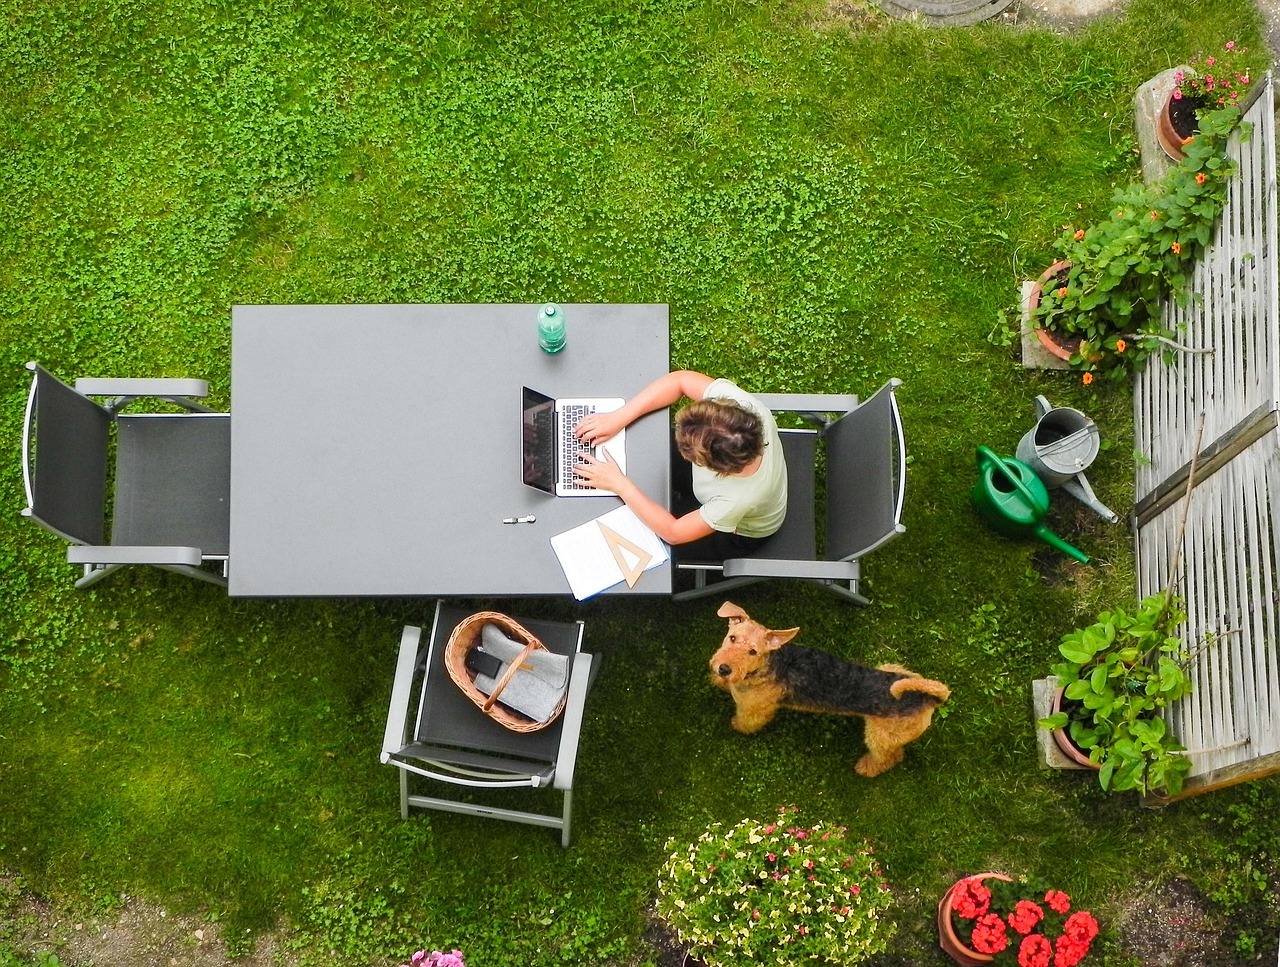 Birdseye view of person and dog at outdoor table in a garden, working on a laptop.